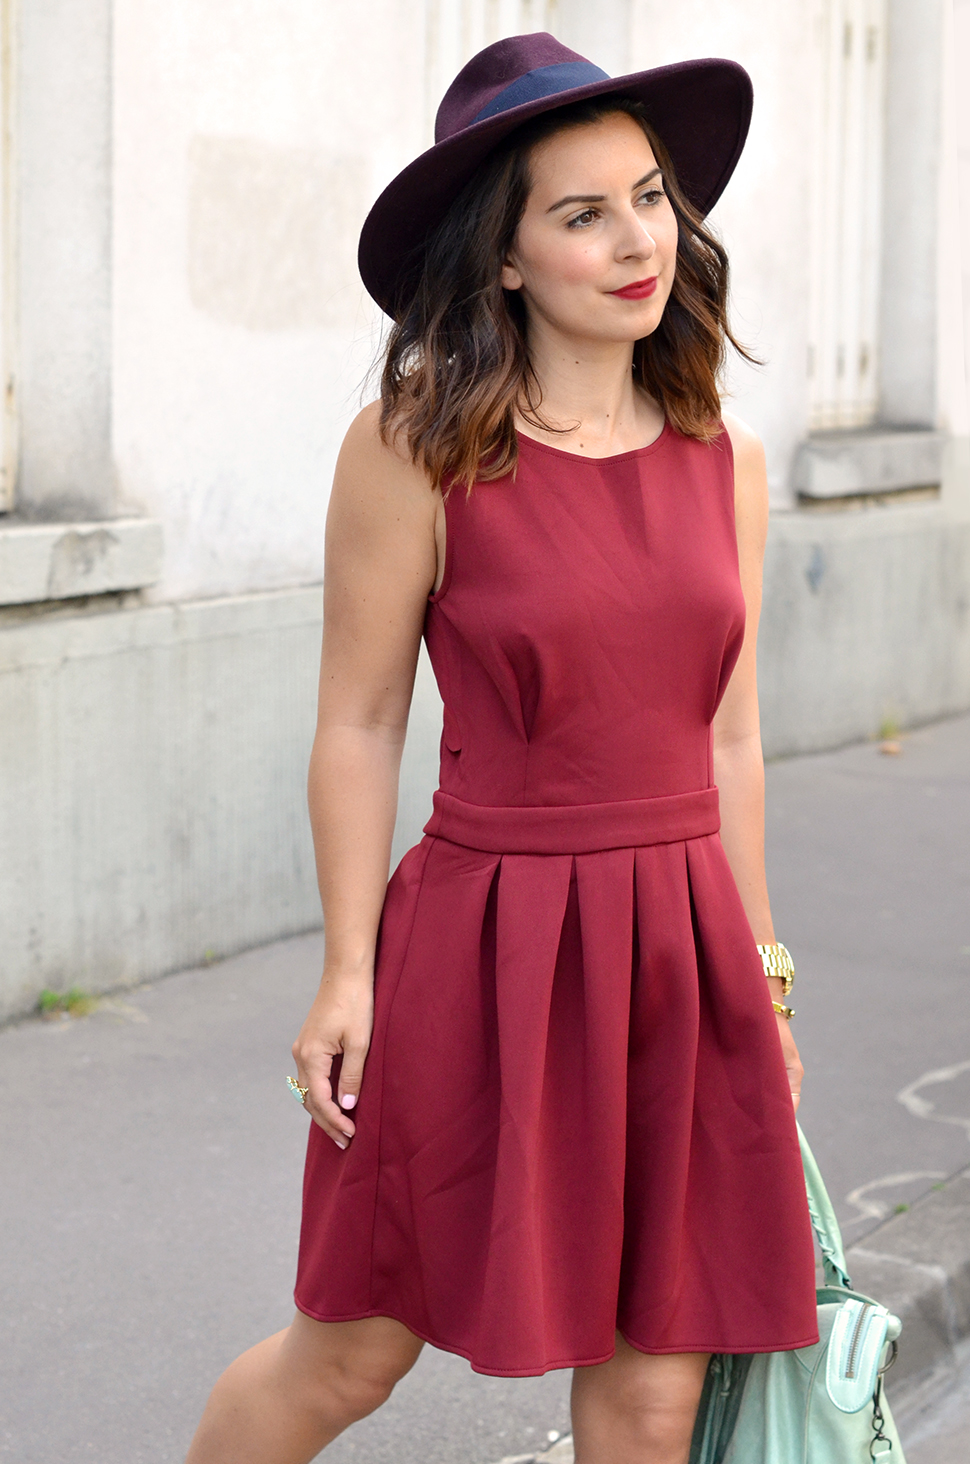 Helloitsvalentine_Burgundy_dress_6